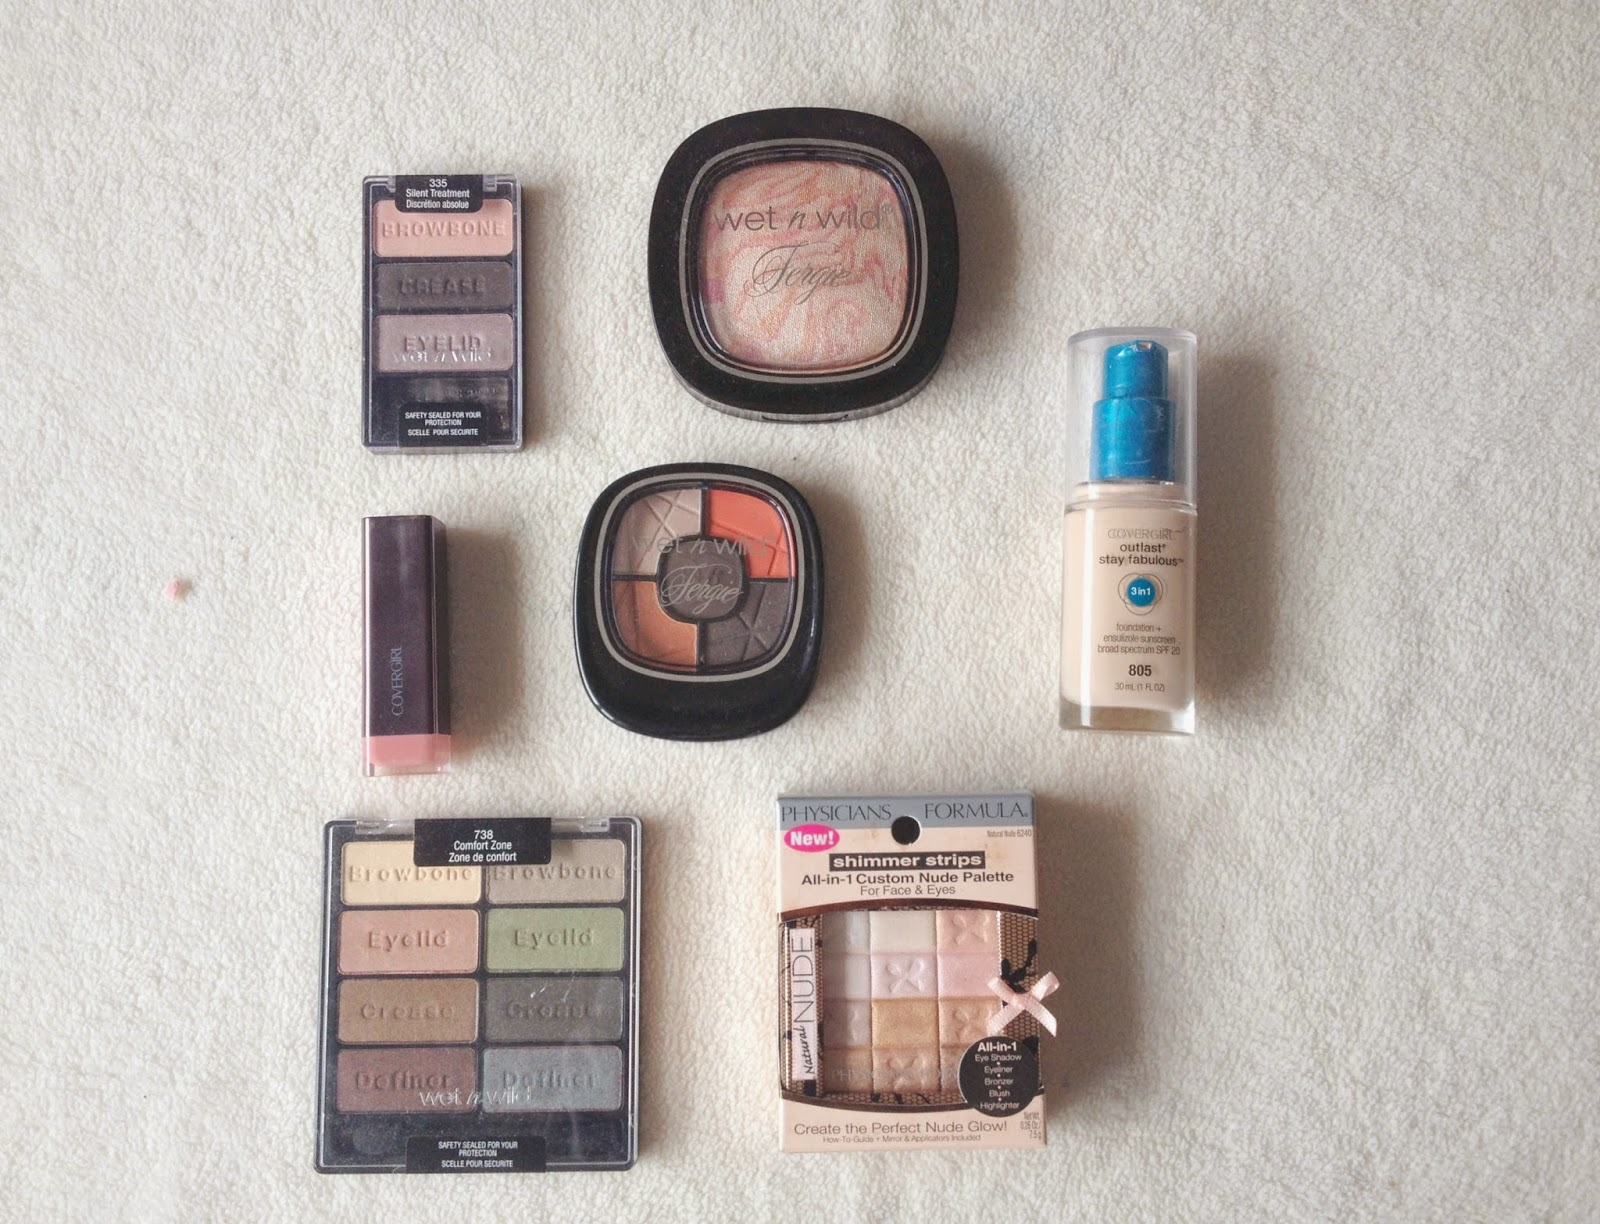 US Beauty Swap featuring Wet n Wild, Covergirl, Physicians Formula